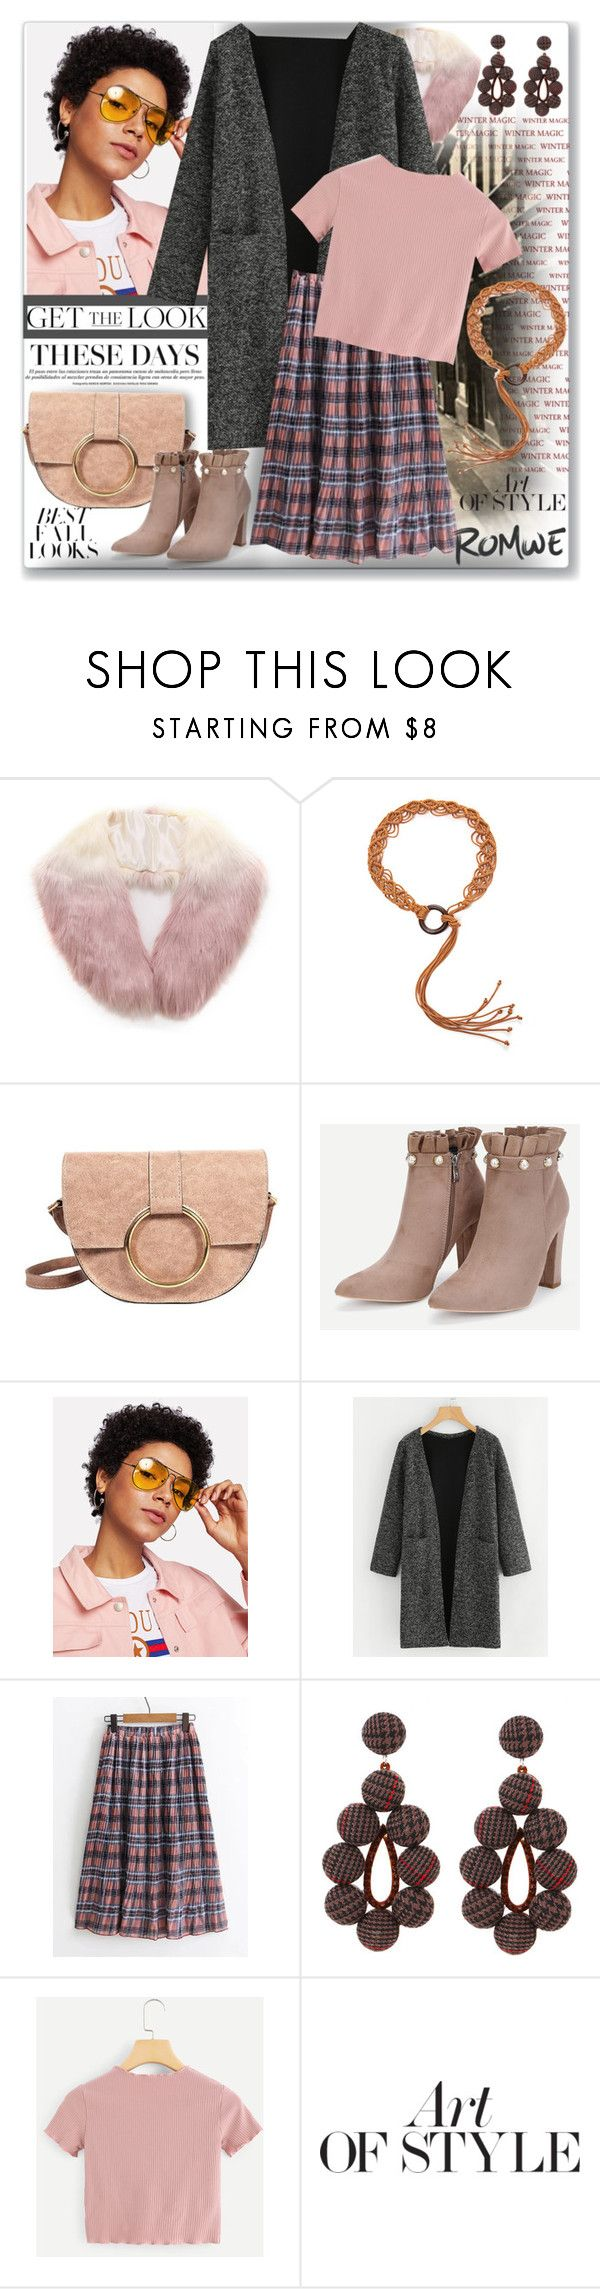 """Untitled #1714"" by ane-twist ❤ liked on Polyvore featuring Pierre Hardy and H&M"